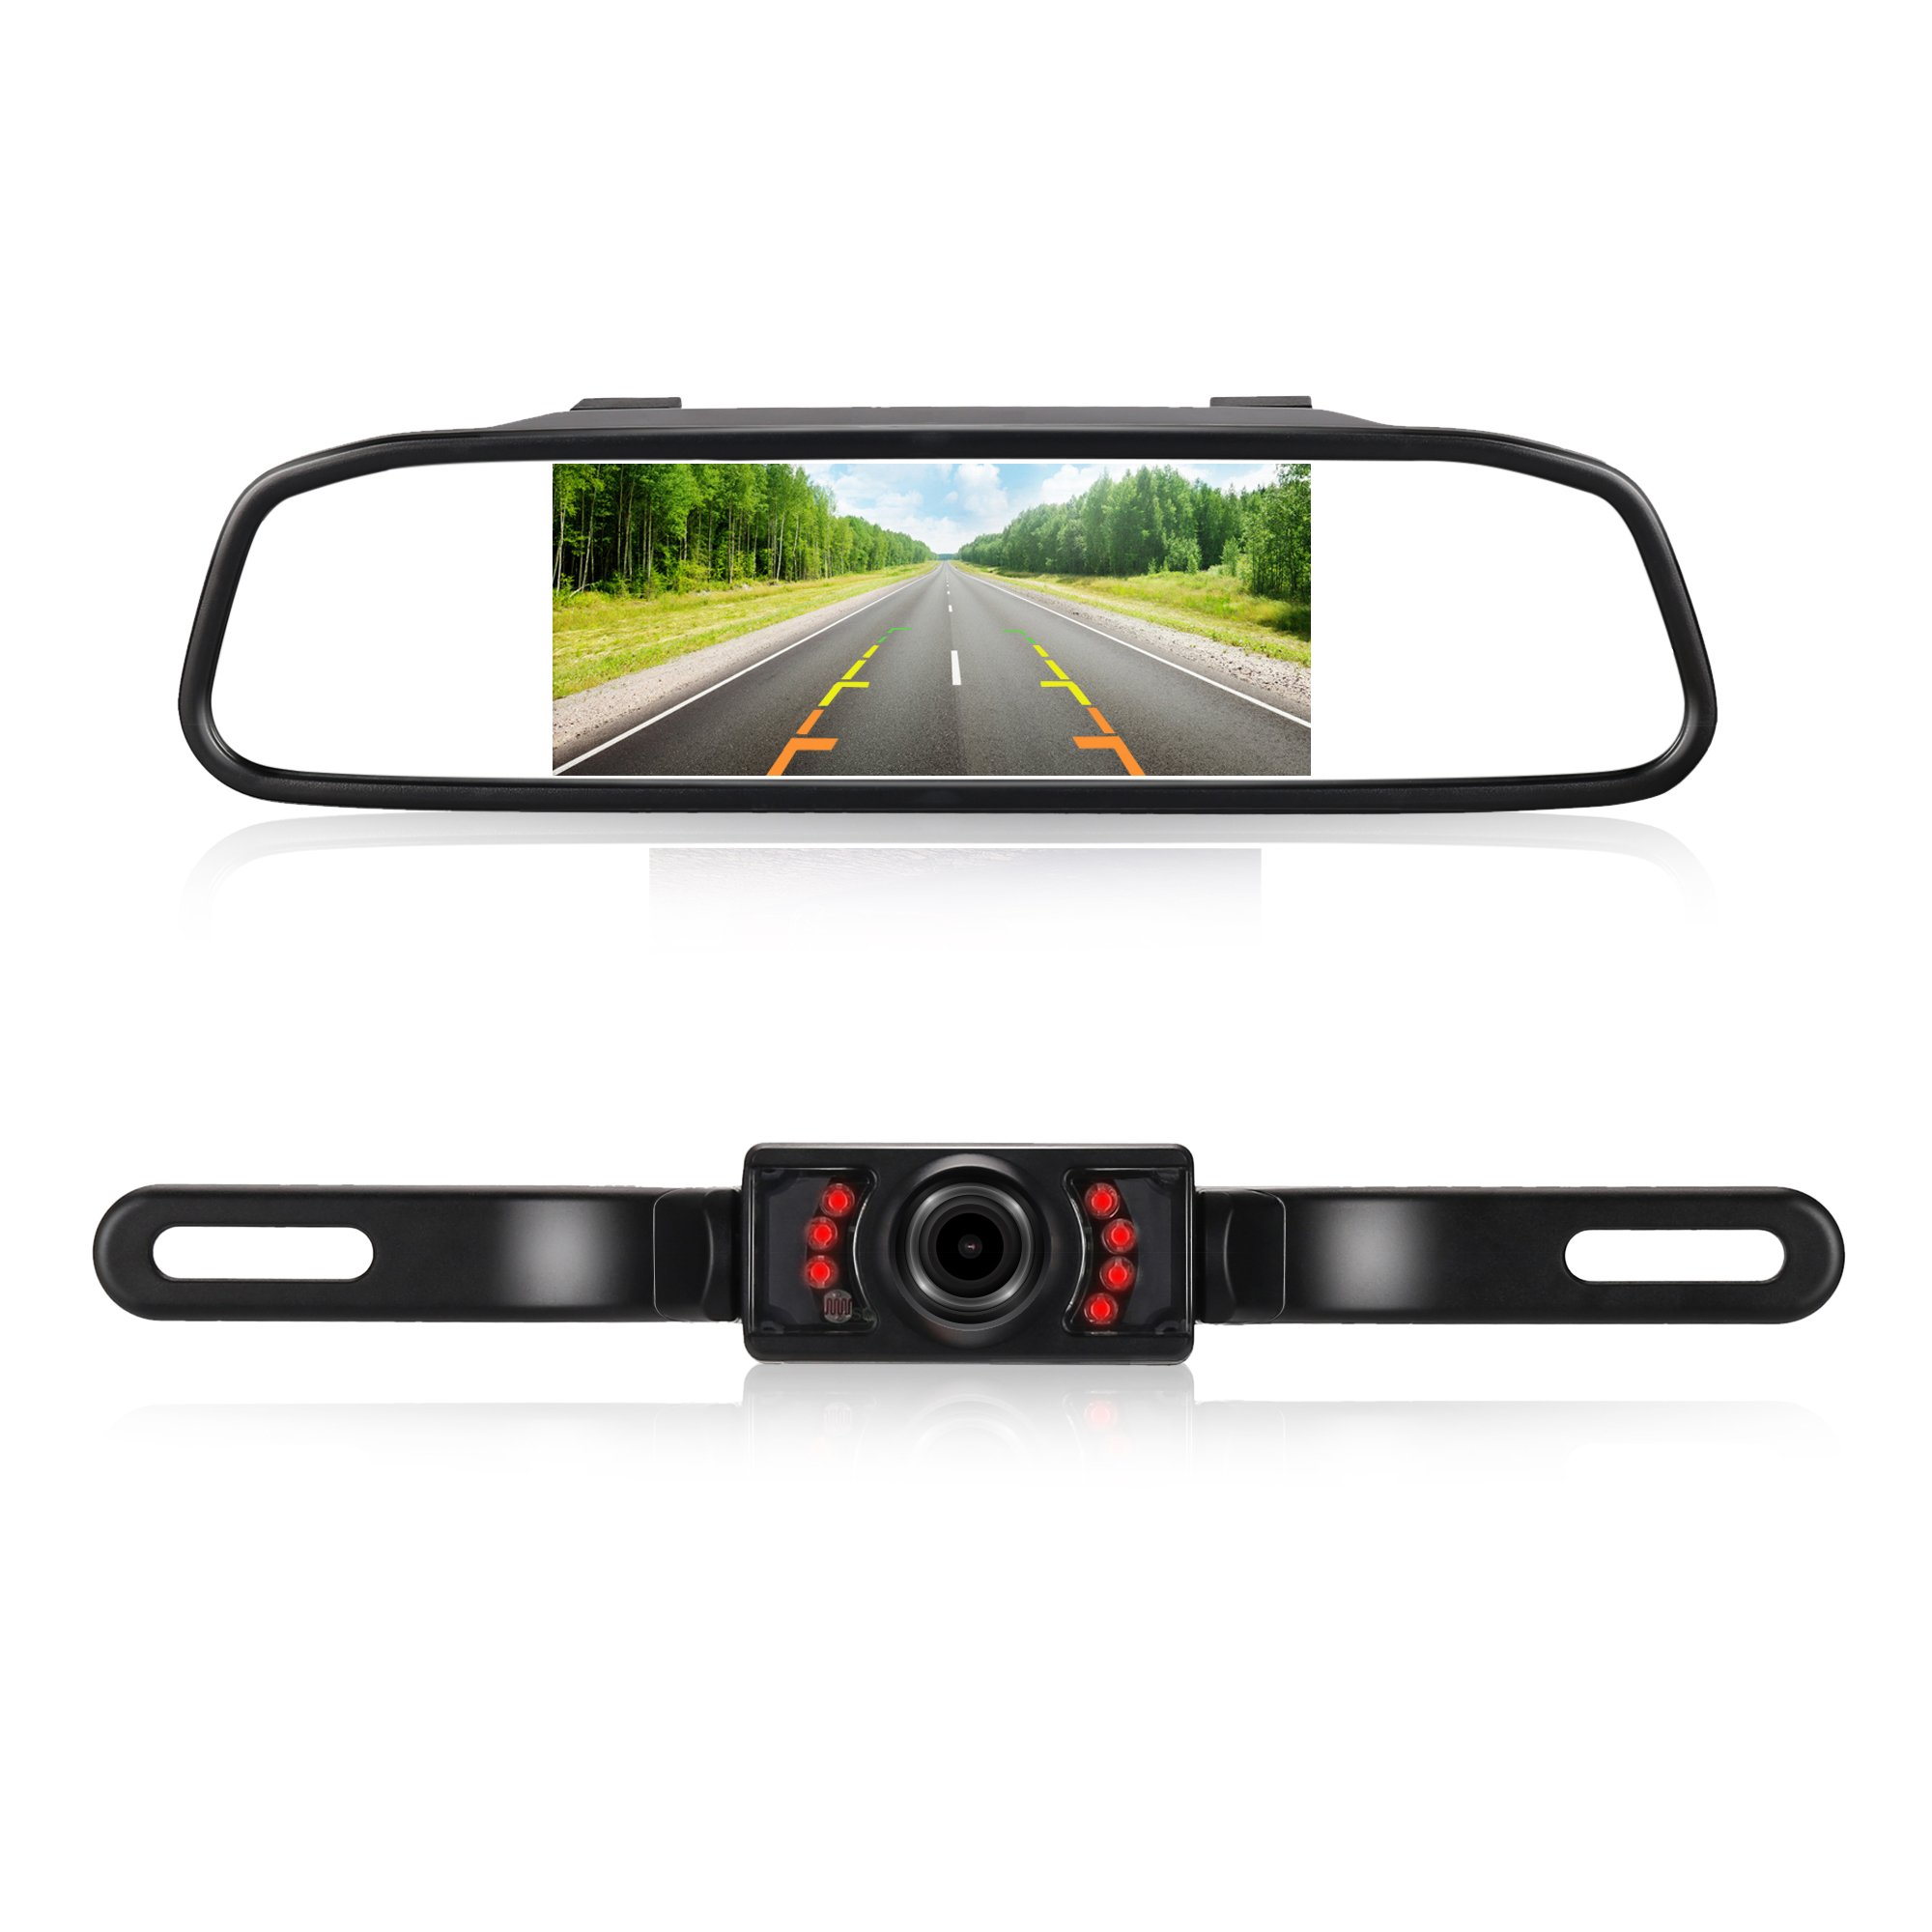 RAAYOO High Definition Color Wide Viewing Angle License Plate Car Rear View Camera with 4.3'' TFT Color LCD Monitor (L013+S4-005) by RAAYOO